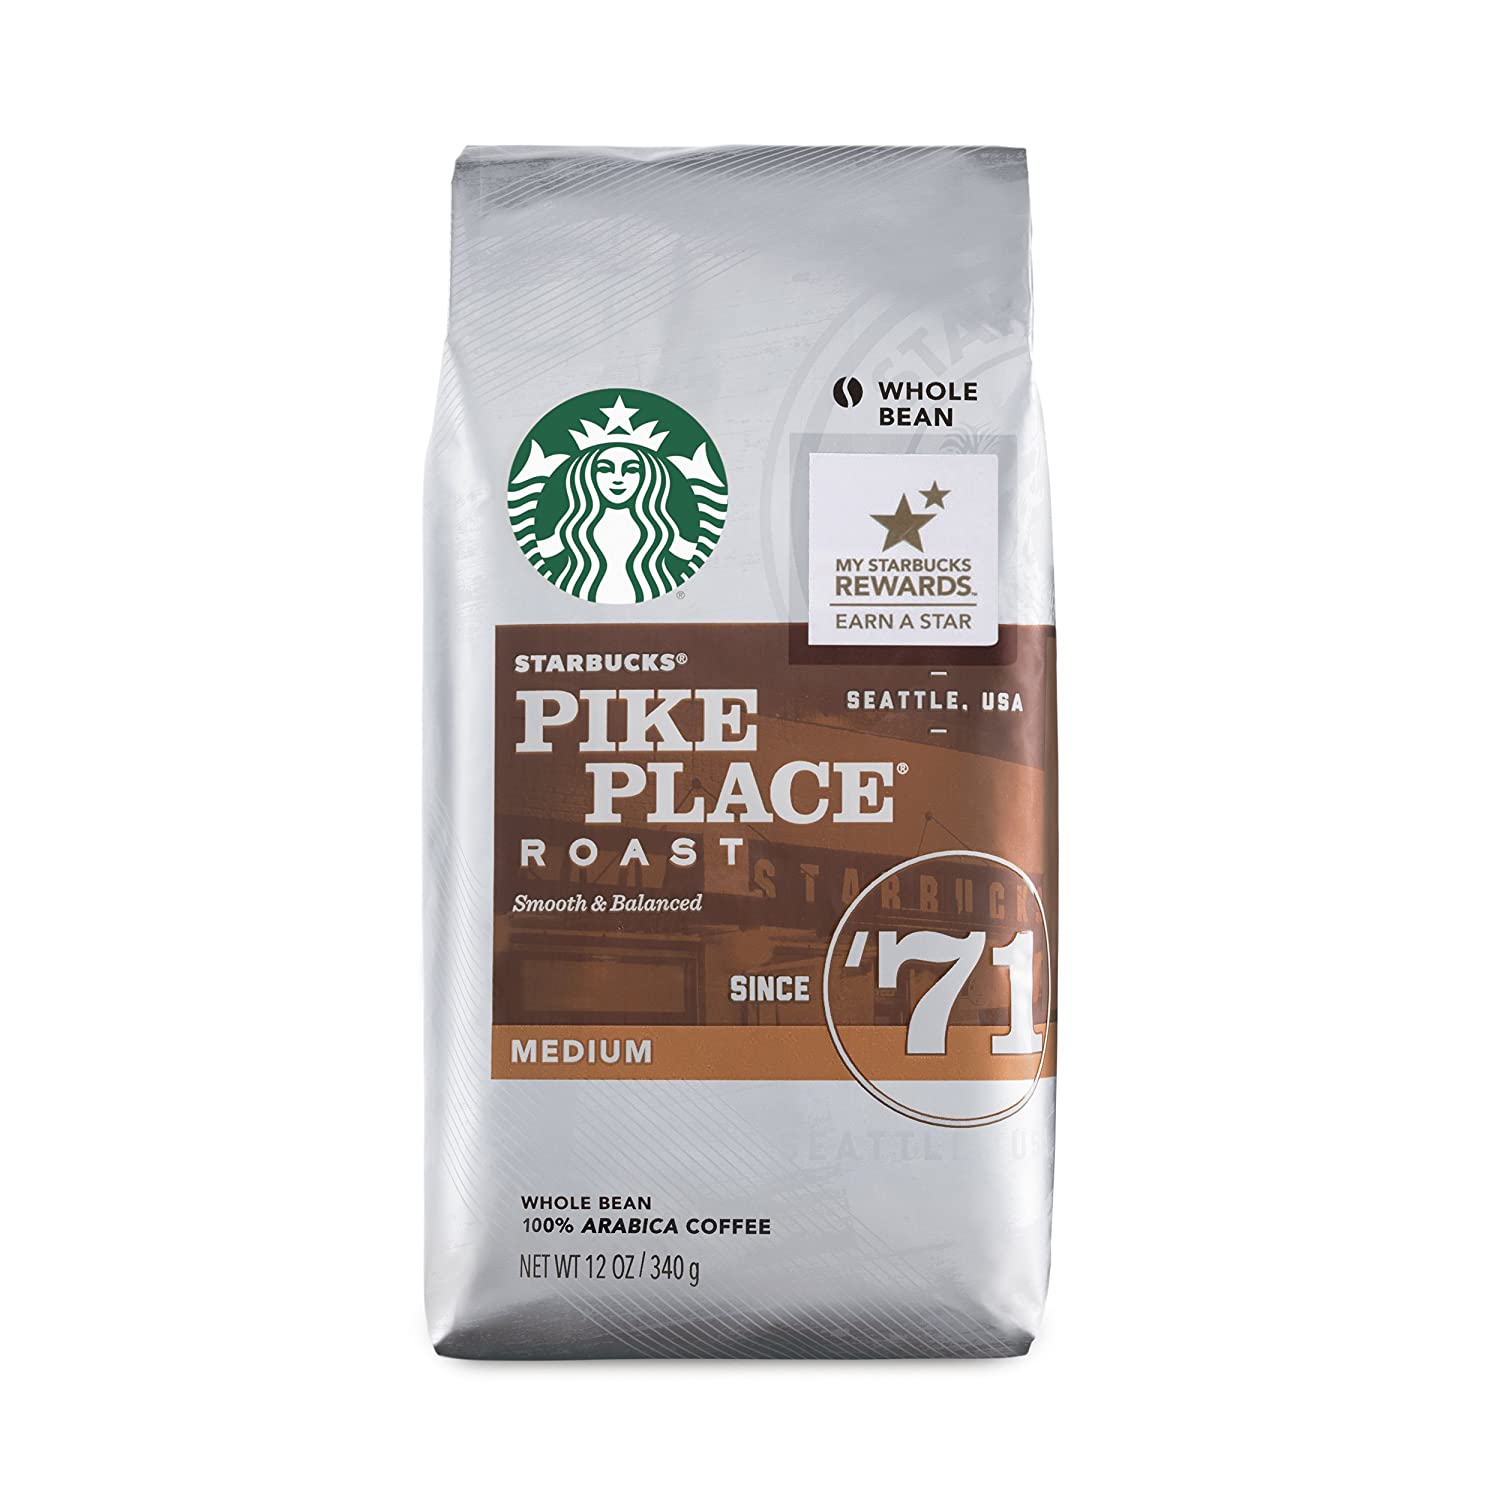 Best Starbucks coffee beans